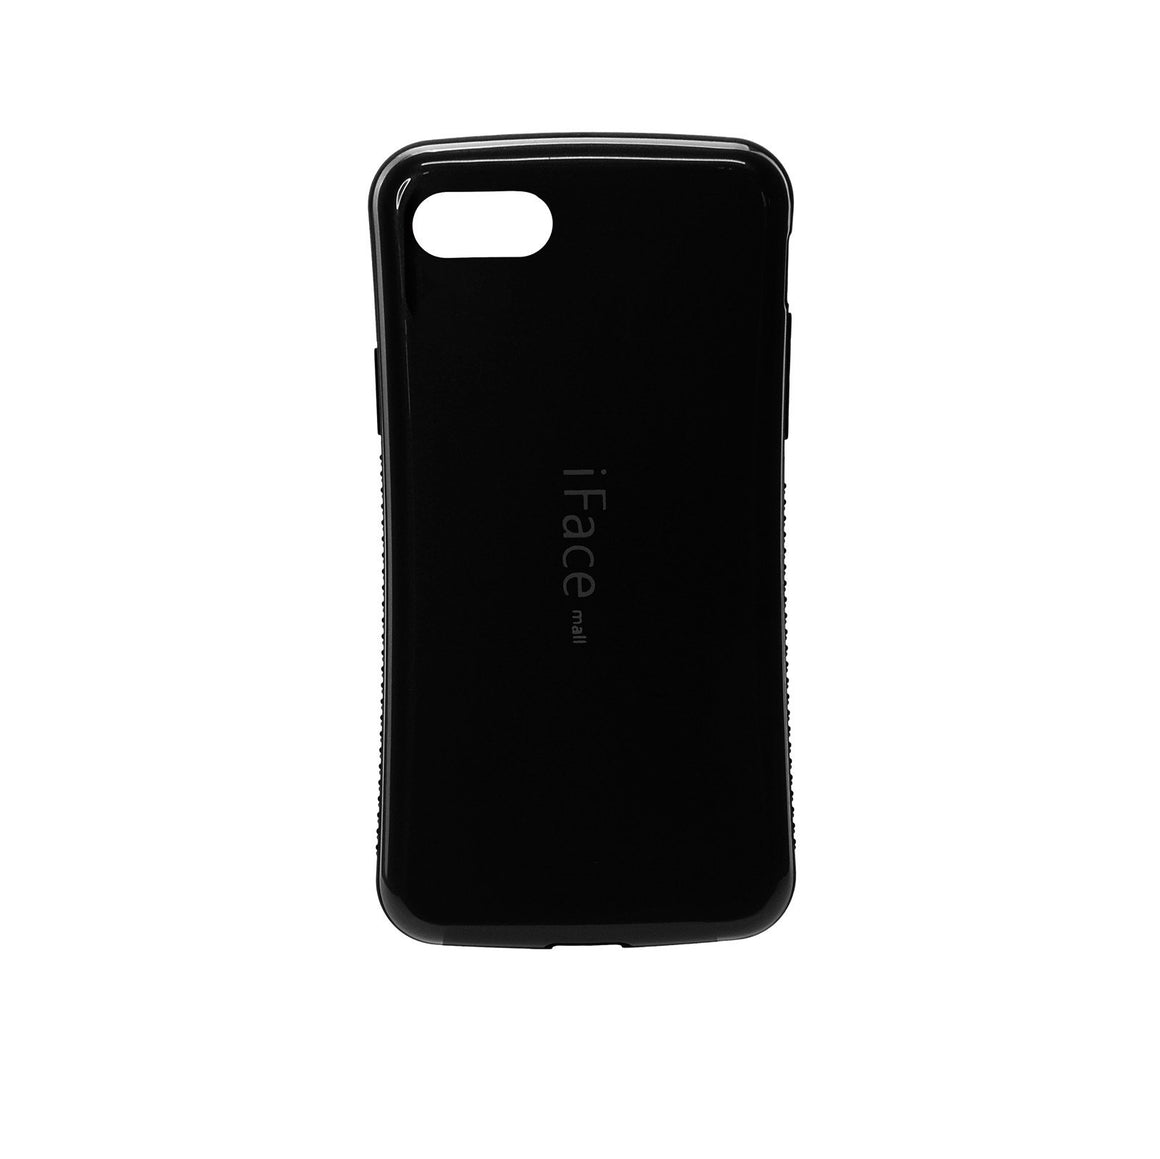 iphone-5-5s-se-iface-heavy-duty-bumper-shockproof-hard-case